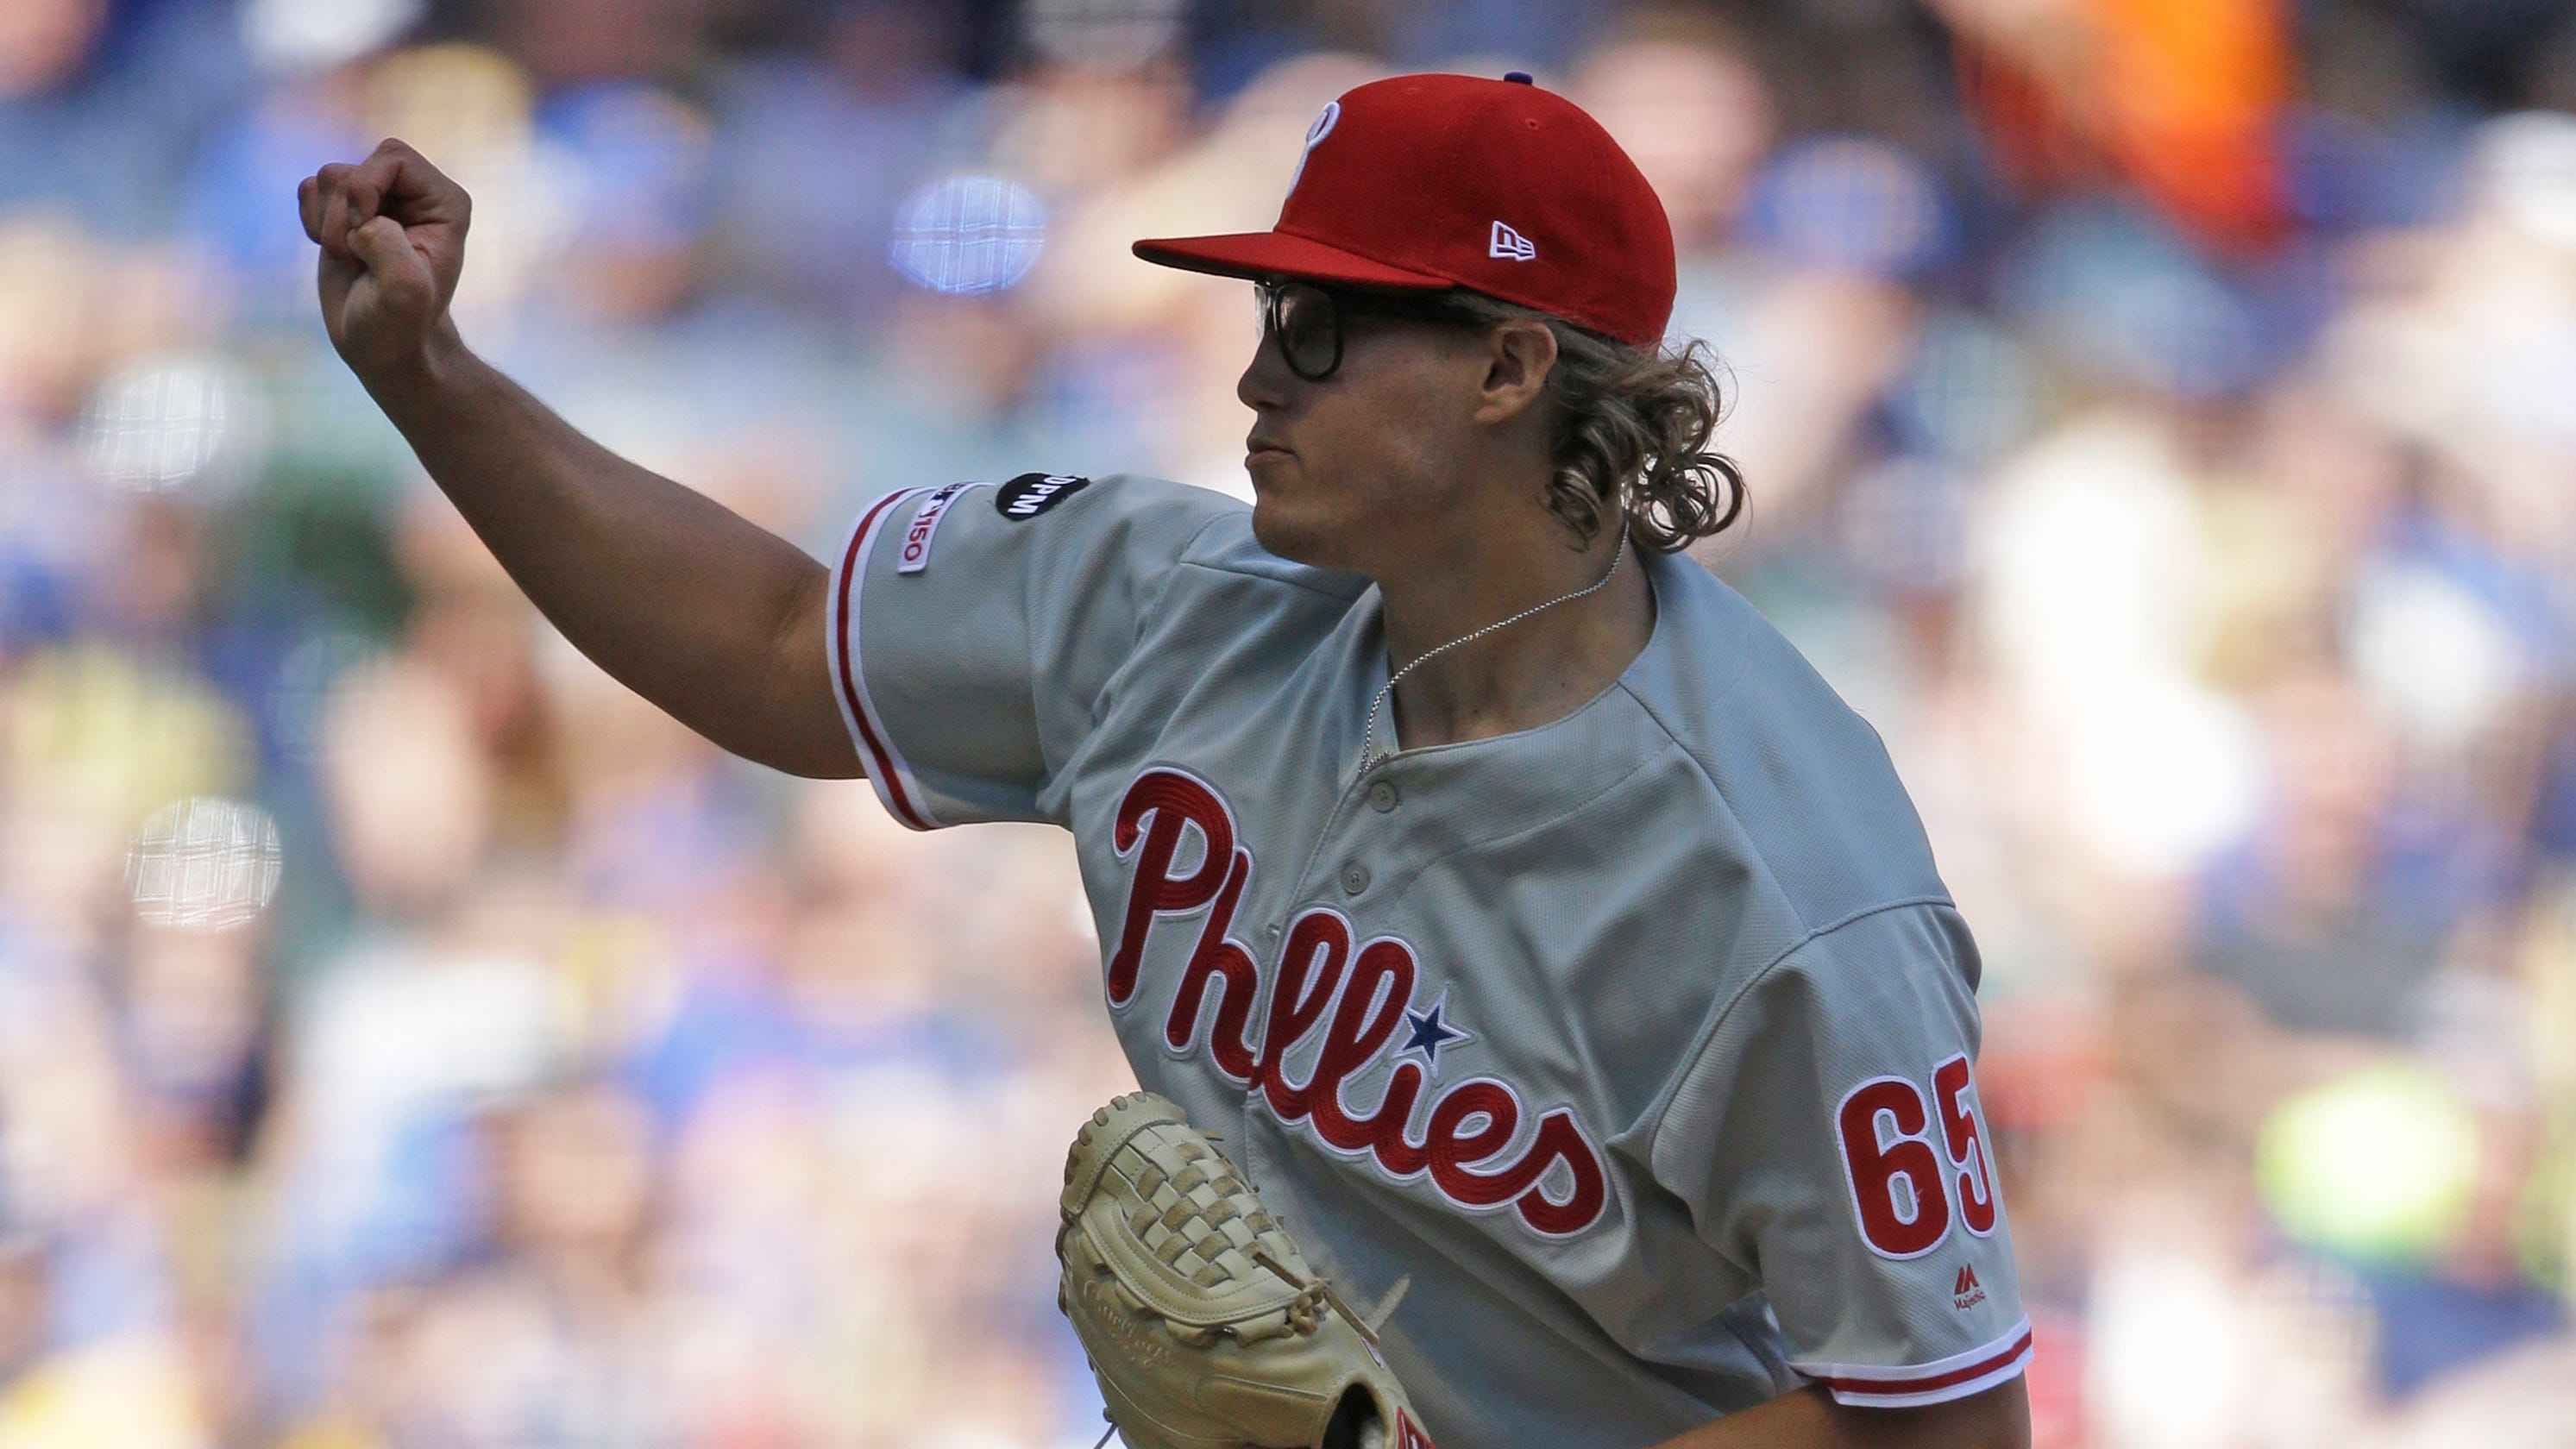 9cec2a40874 Fort Collins graduate called up to MLB with Philadelphia Phillies